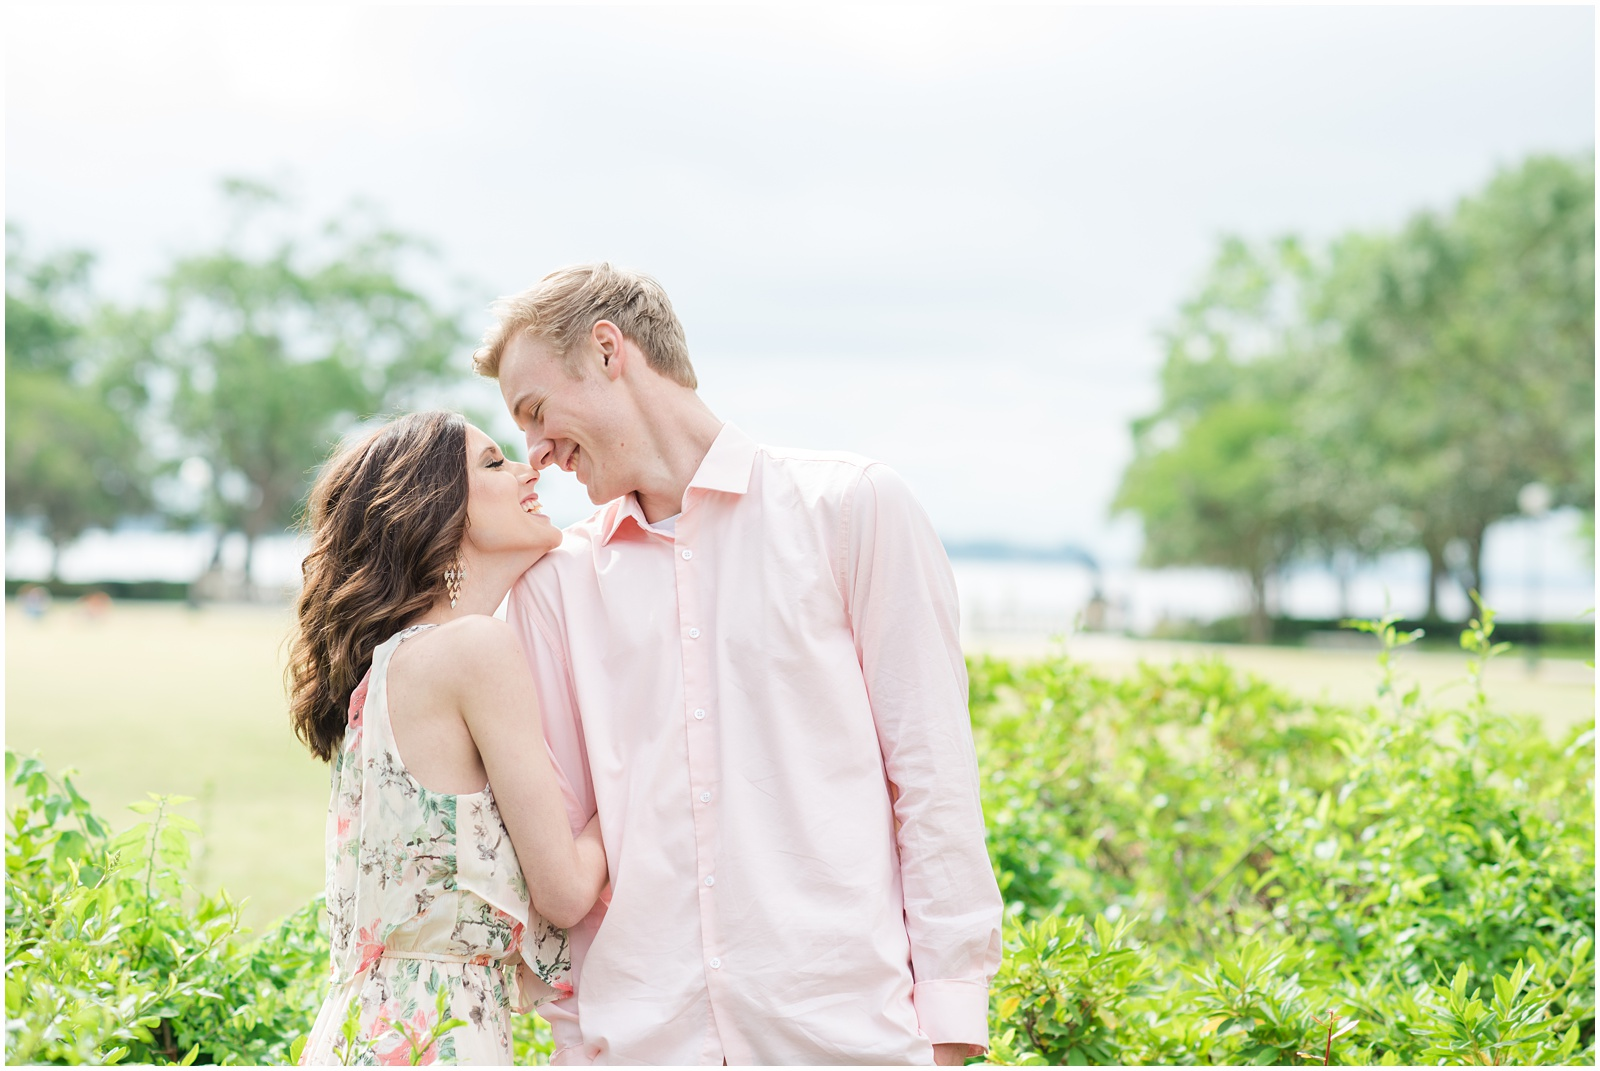 Jacksonville_Florida_Memorial Park_Engagement_Portraits_11.jpg